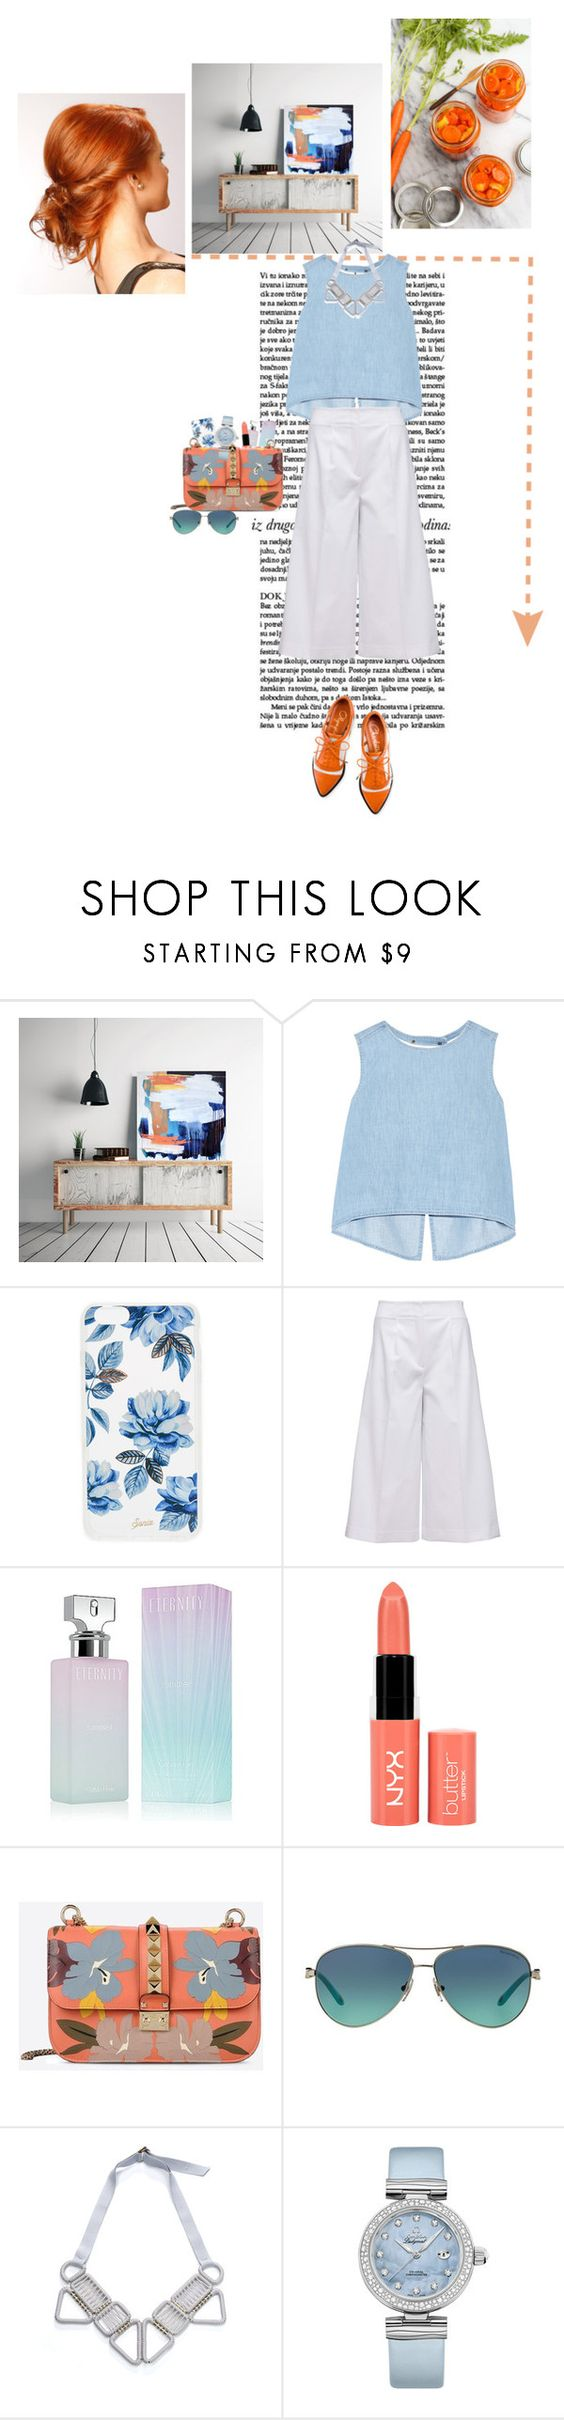 """№47 2016"" by akatonbo ❤ liked on Polyvore featuring Charlotte Olympia, Steve J & Yoni P, Sonix, Tommy Hilfiger, Calvin Klein, NYX, Valentino, Tiffany & Co. and OMEGA"